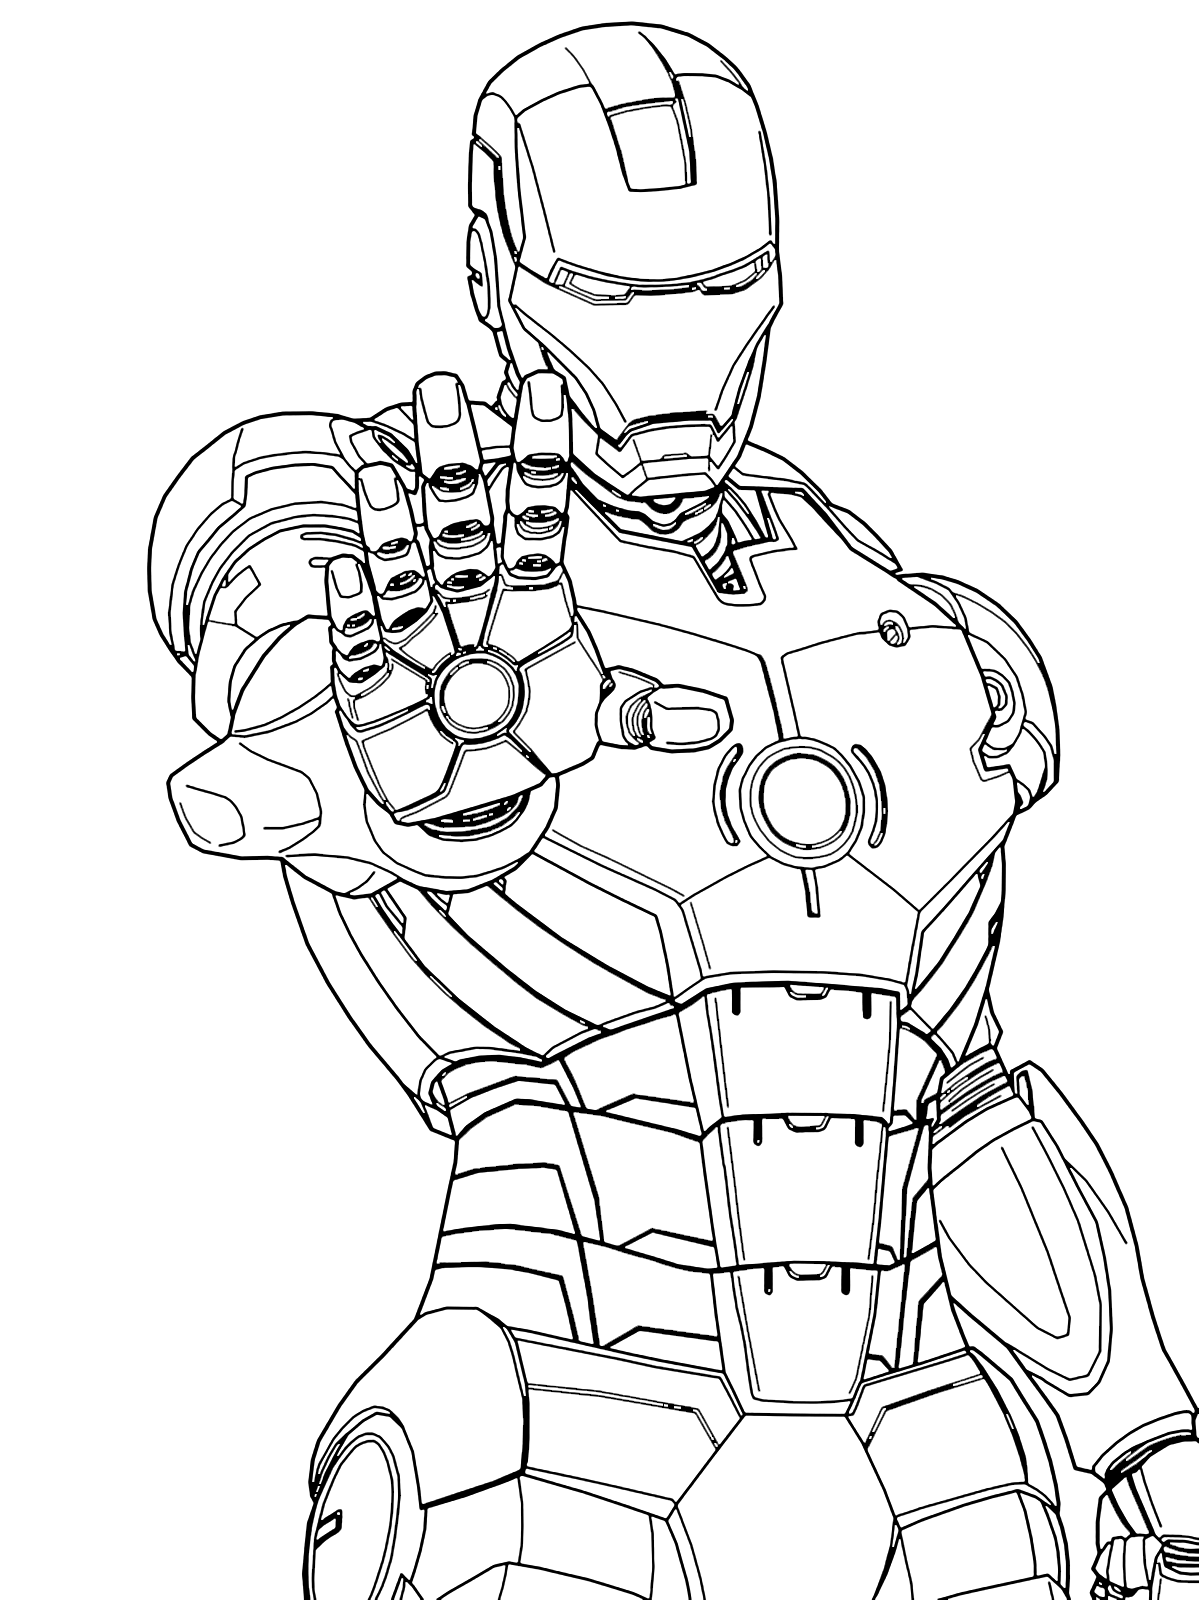 iron man coloring images coloring pages for kids free images iron man avengers images man iron coloring